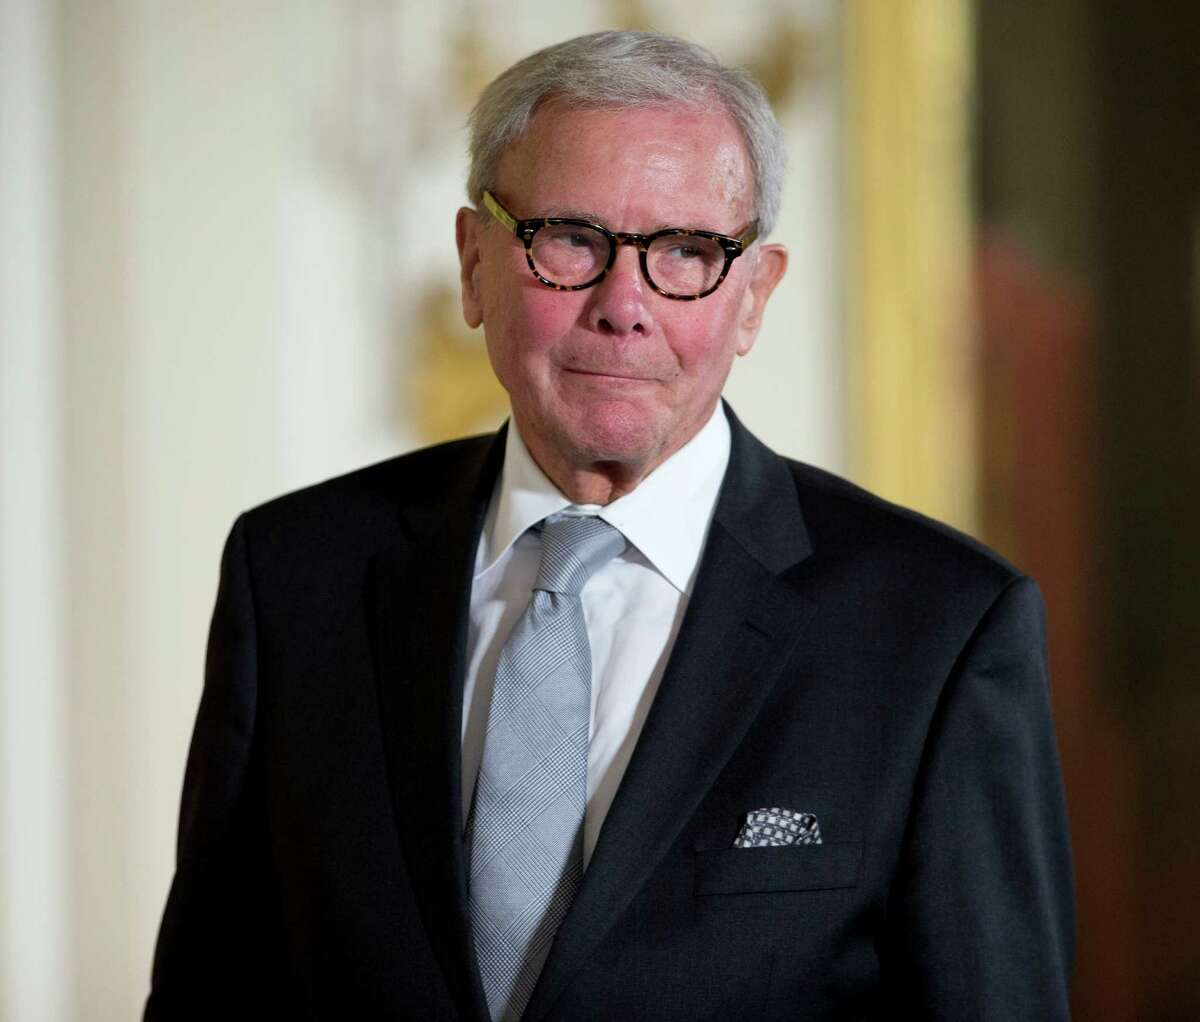 Journalist Tom Brokaw, is introduced before being awarded the Presidential Medal of Freedom, Monday, Nov. 24, 2014, during a ceremony in the East Room of the White House in Washington. President Obama is presenting the nation's highest civilian honor to 19 artists, activists, public servants and others. (AP Photo/Pablo Martinez Monsivais)